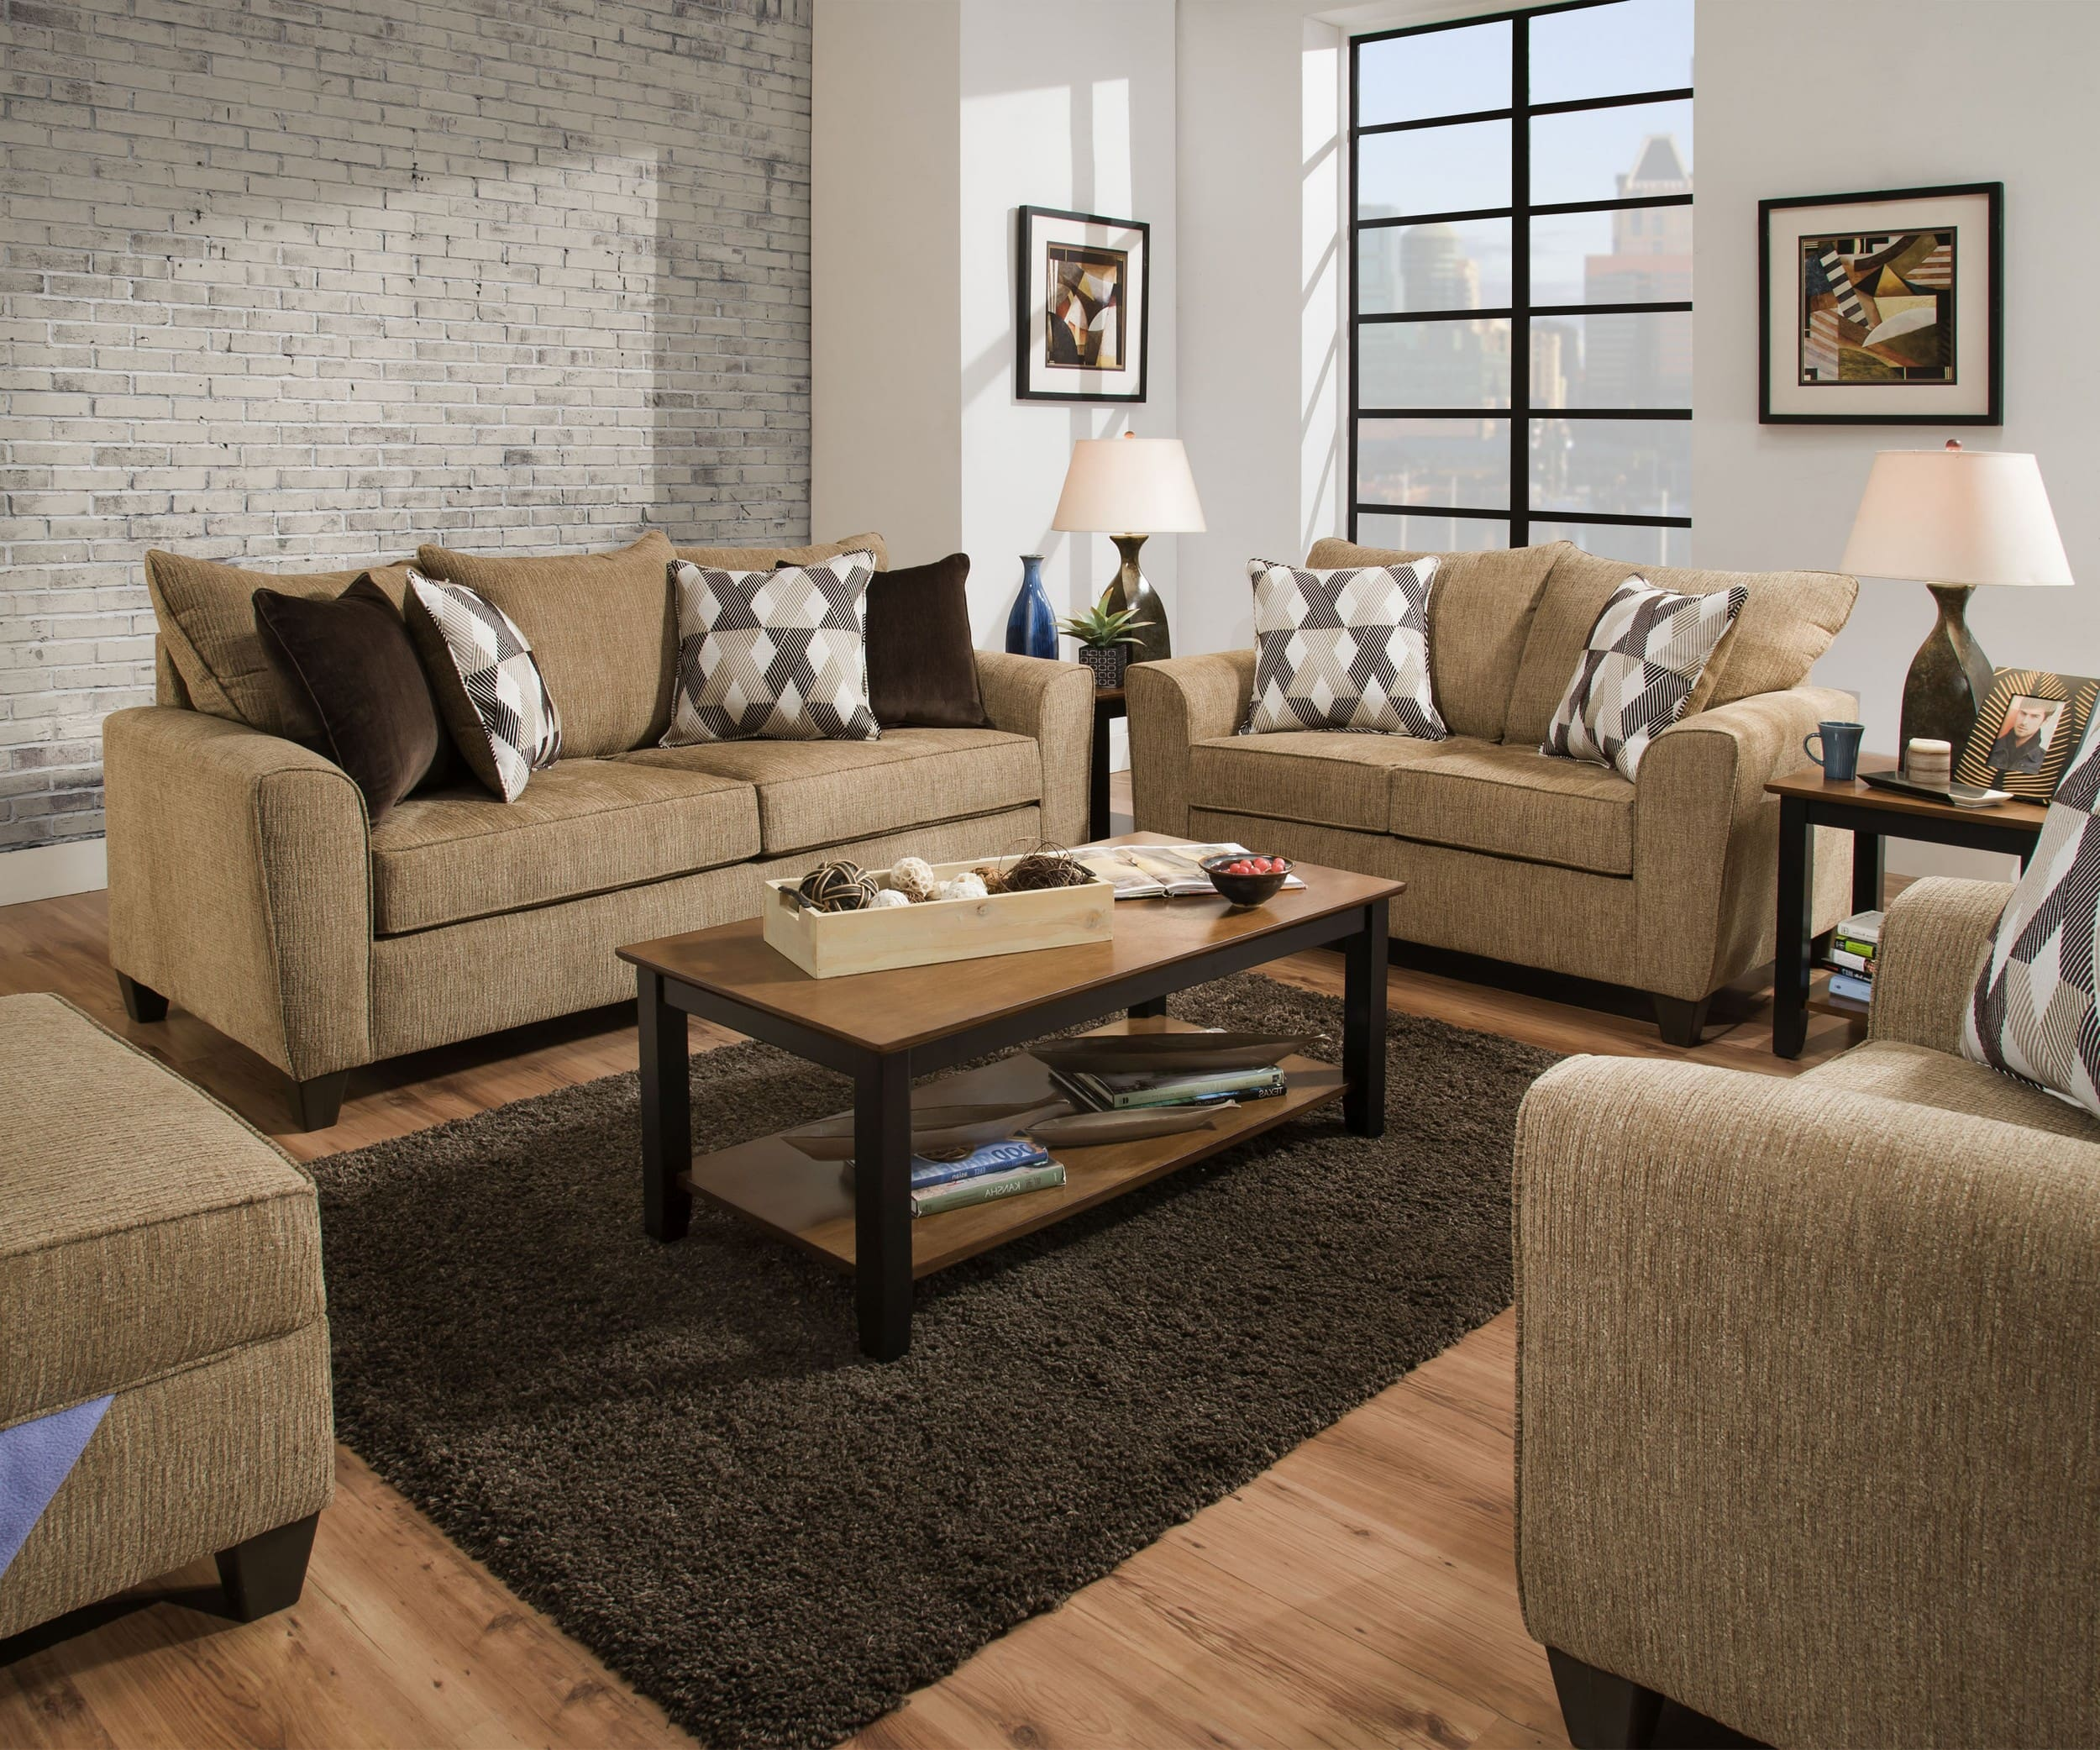 Simmons Upholstery Reed Tan 3 Piece Living Room Set With Queen